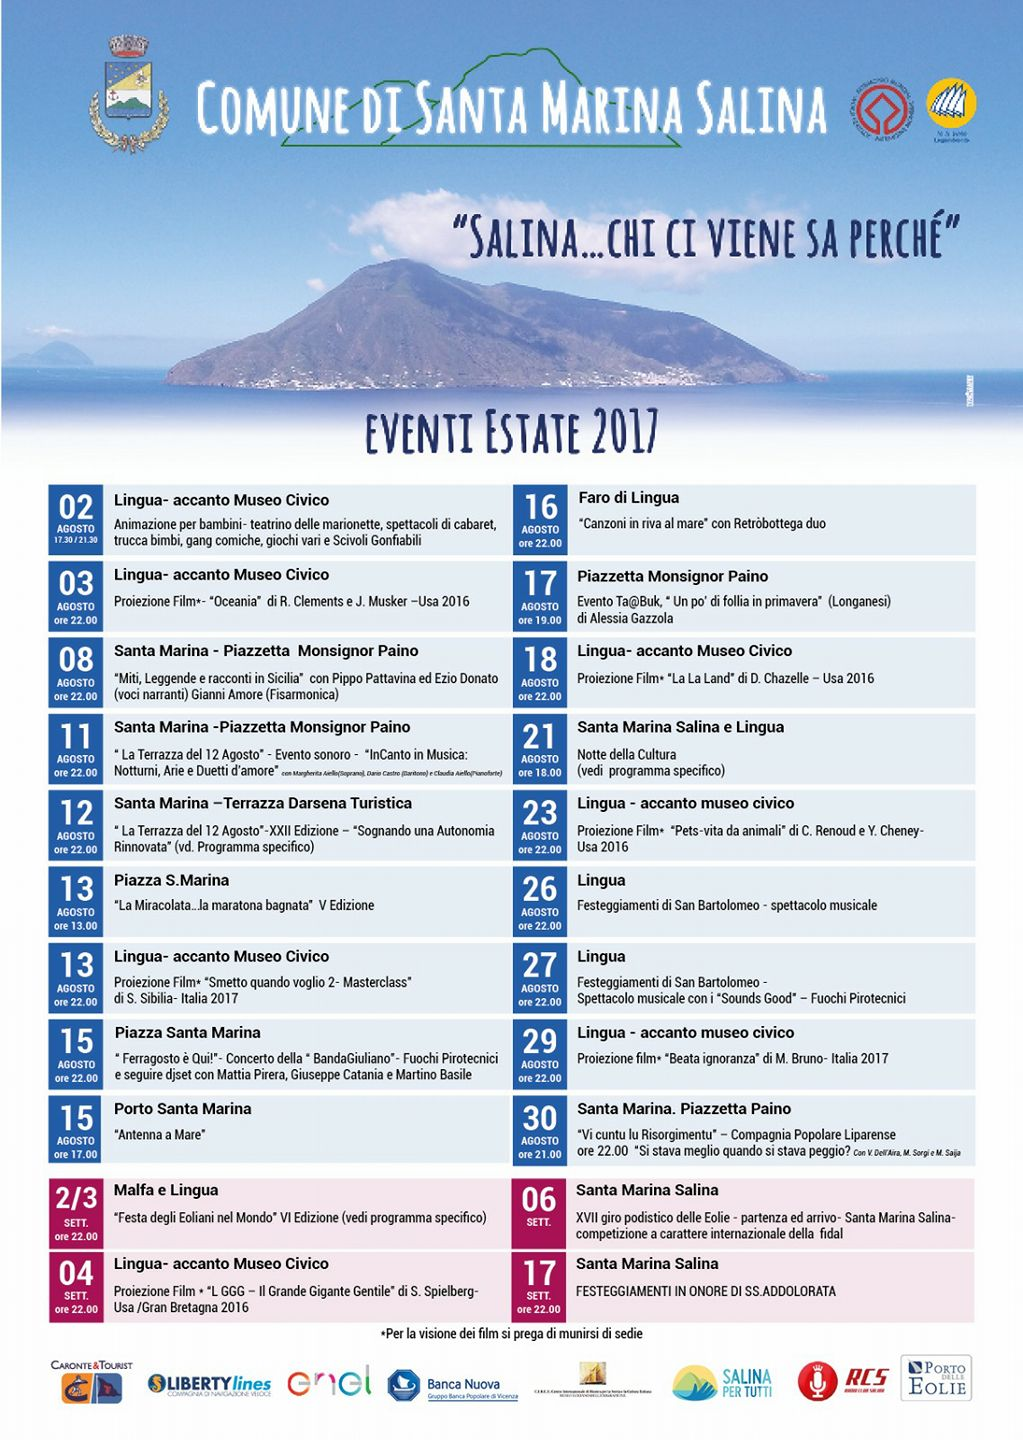 EVENTI ESTATE 2017 - SALINA